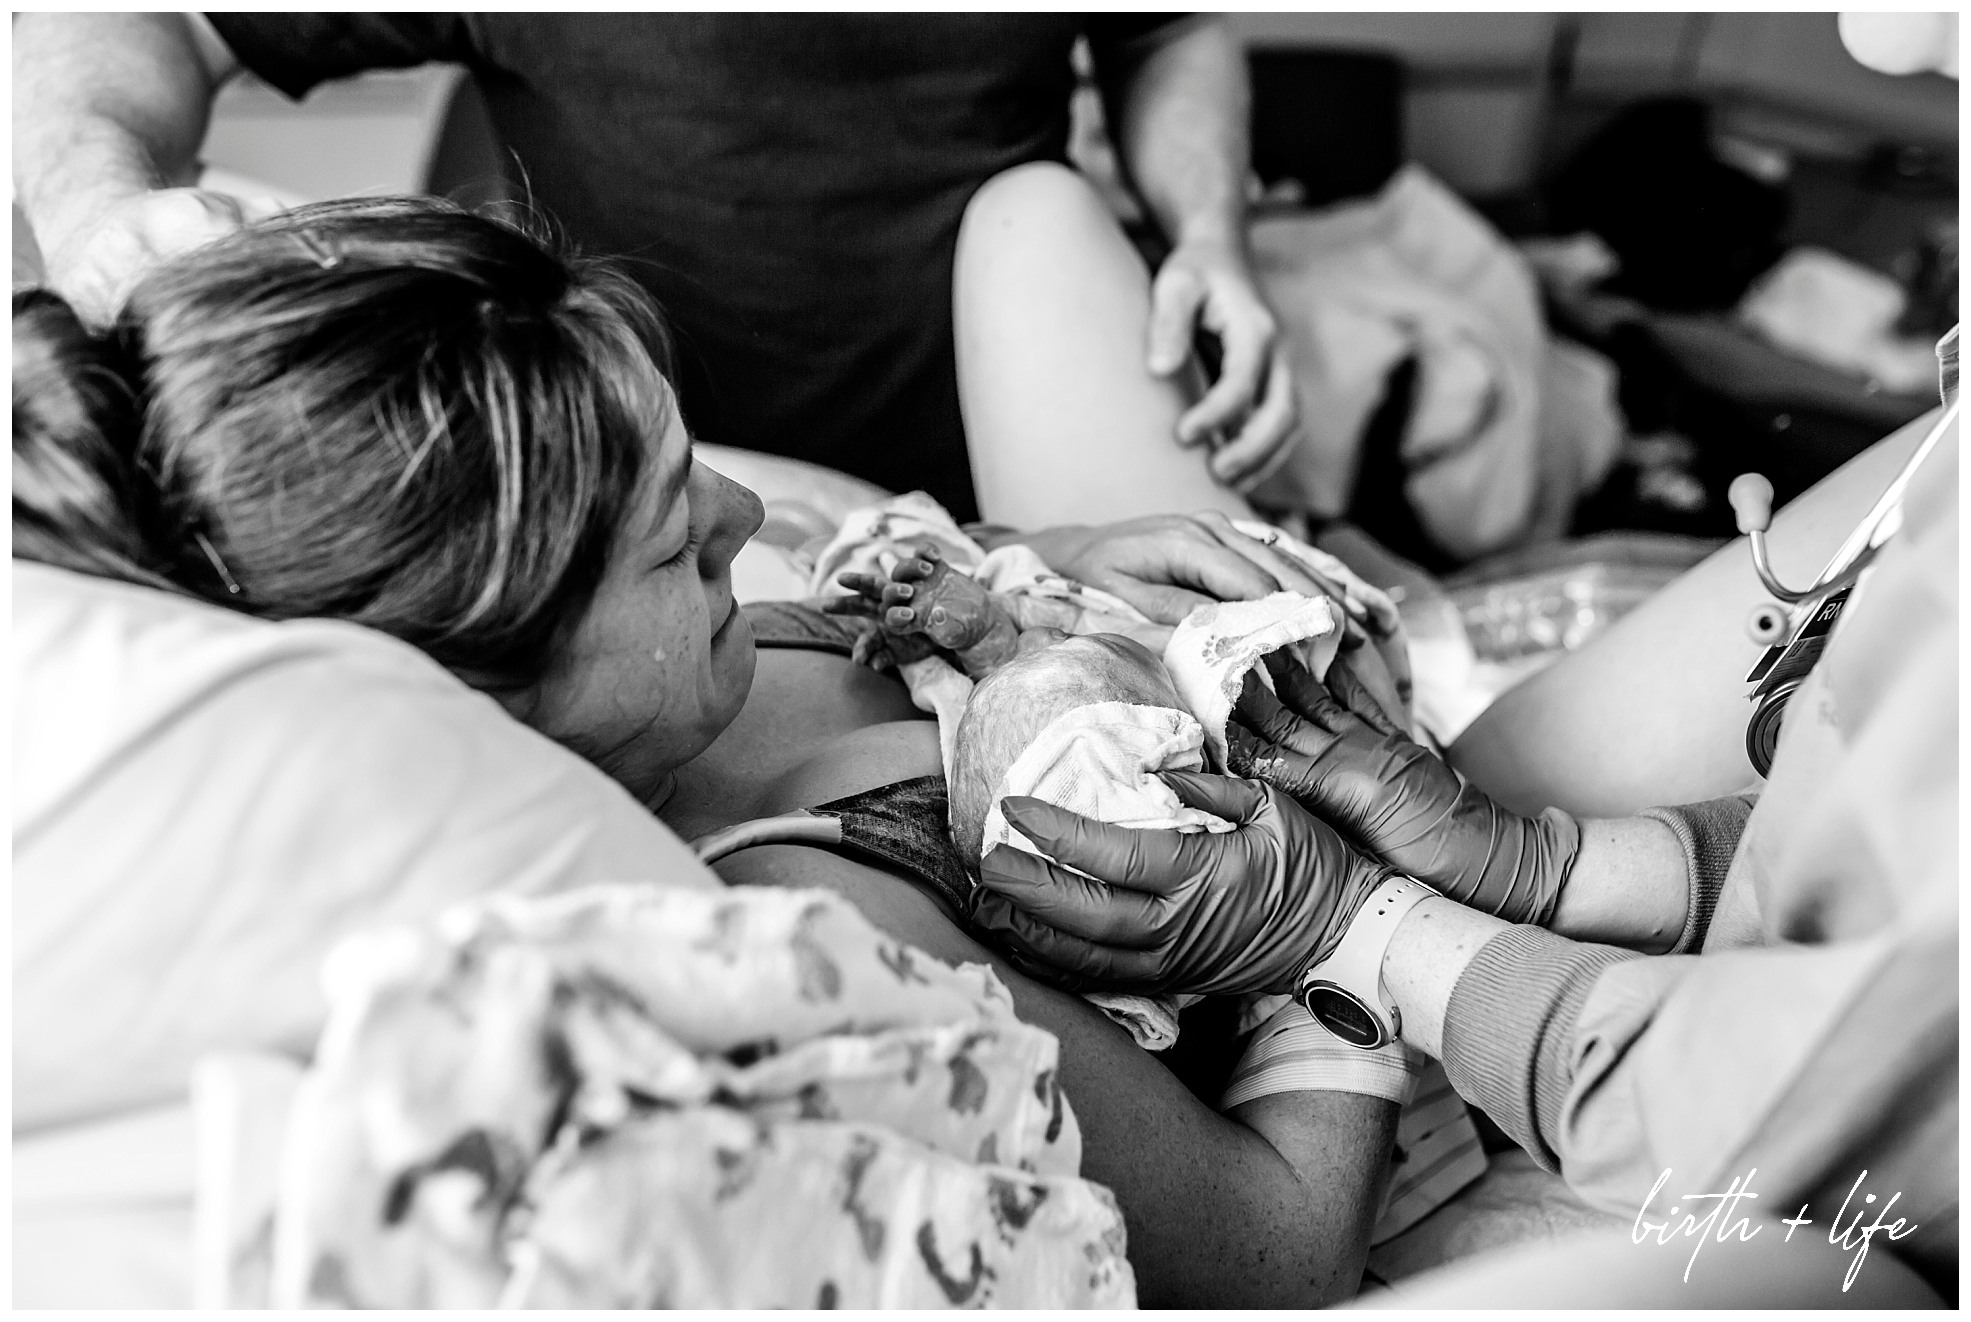 dfw-birth-and-life-photography-family-photojournalism-documentary-birth-storyacclaim-midwives-clark031.jpg